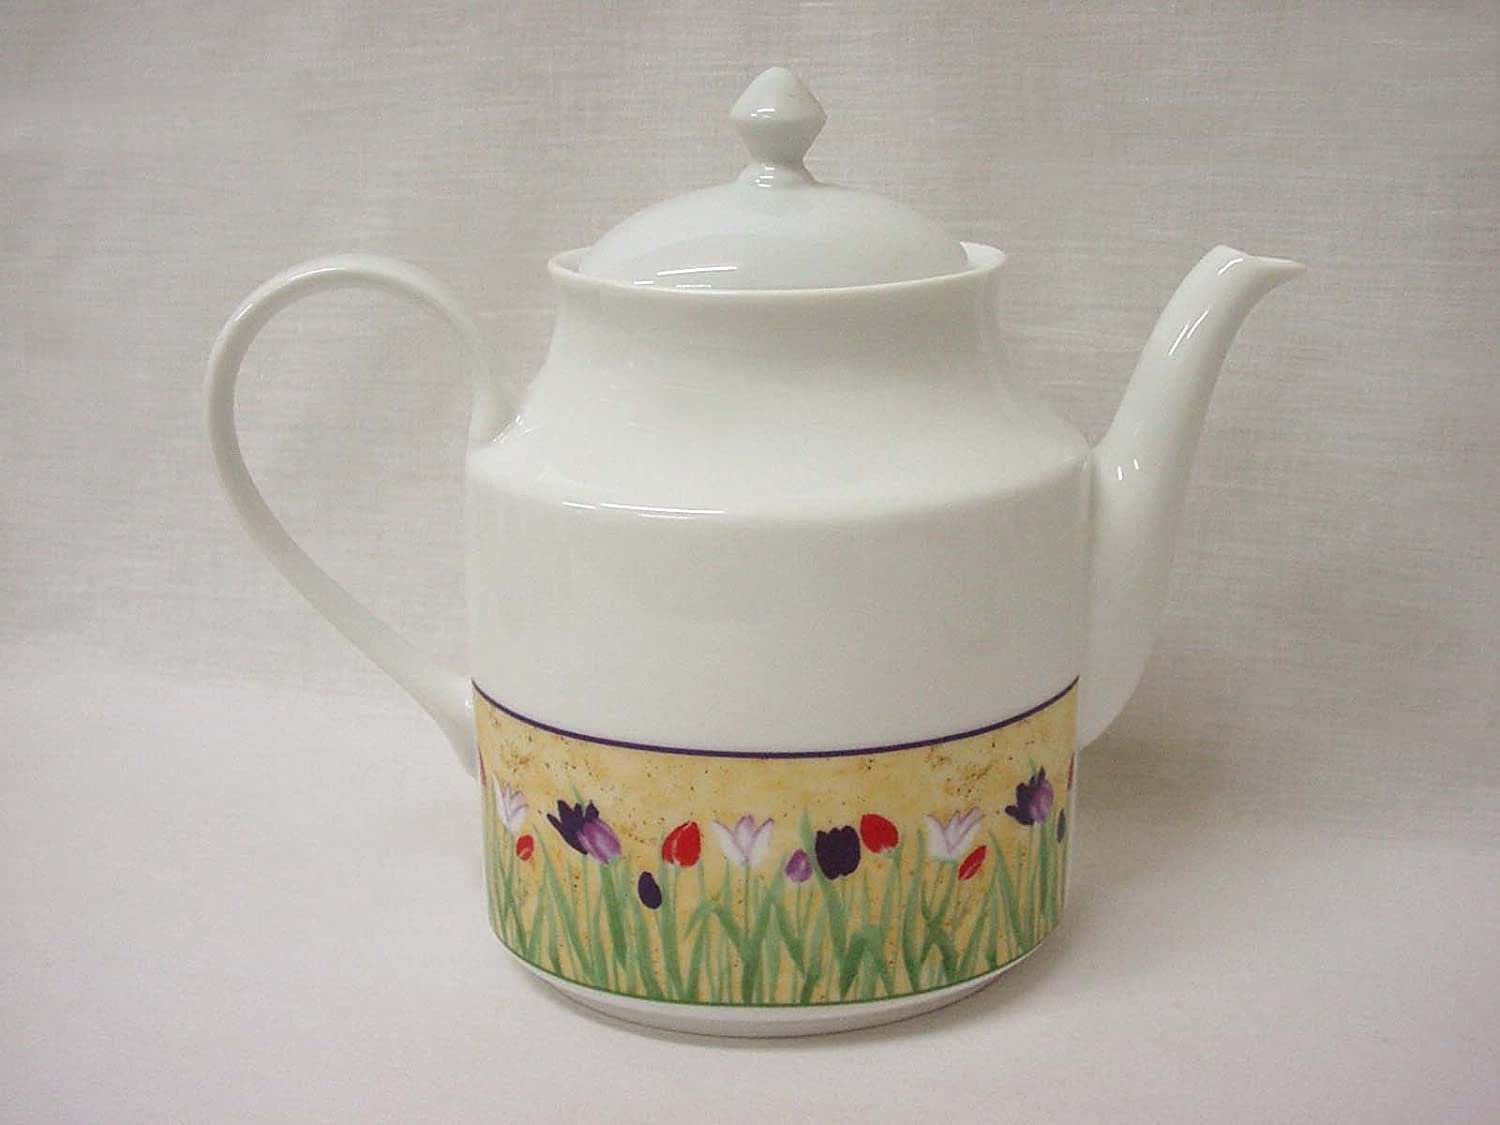 CAFETERA Tetera Ovalada 1550ML Porcelana Tulipanes CESPED Colores ...